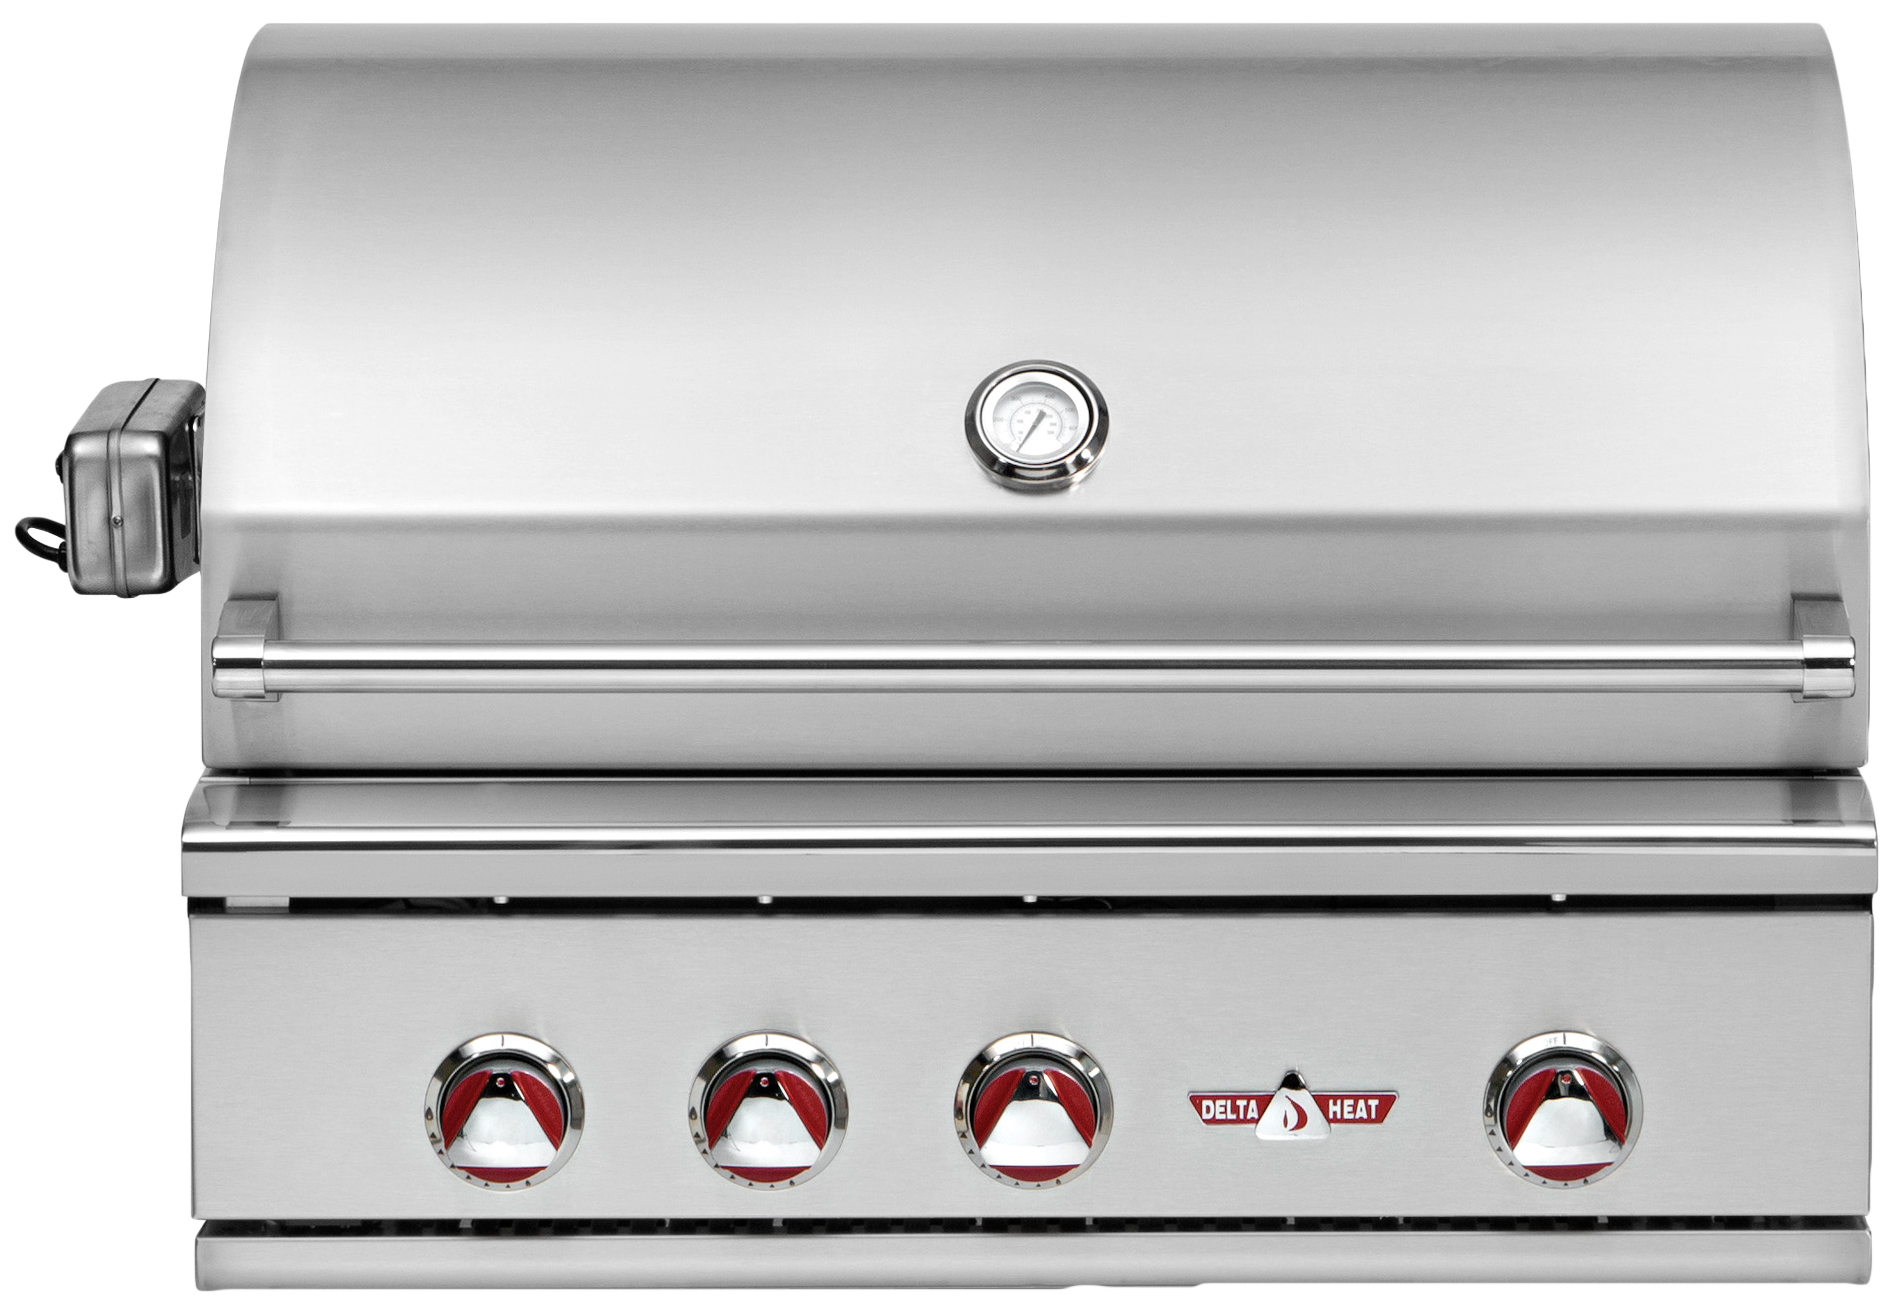 32 inch stainless steel built-in gas grill